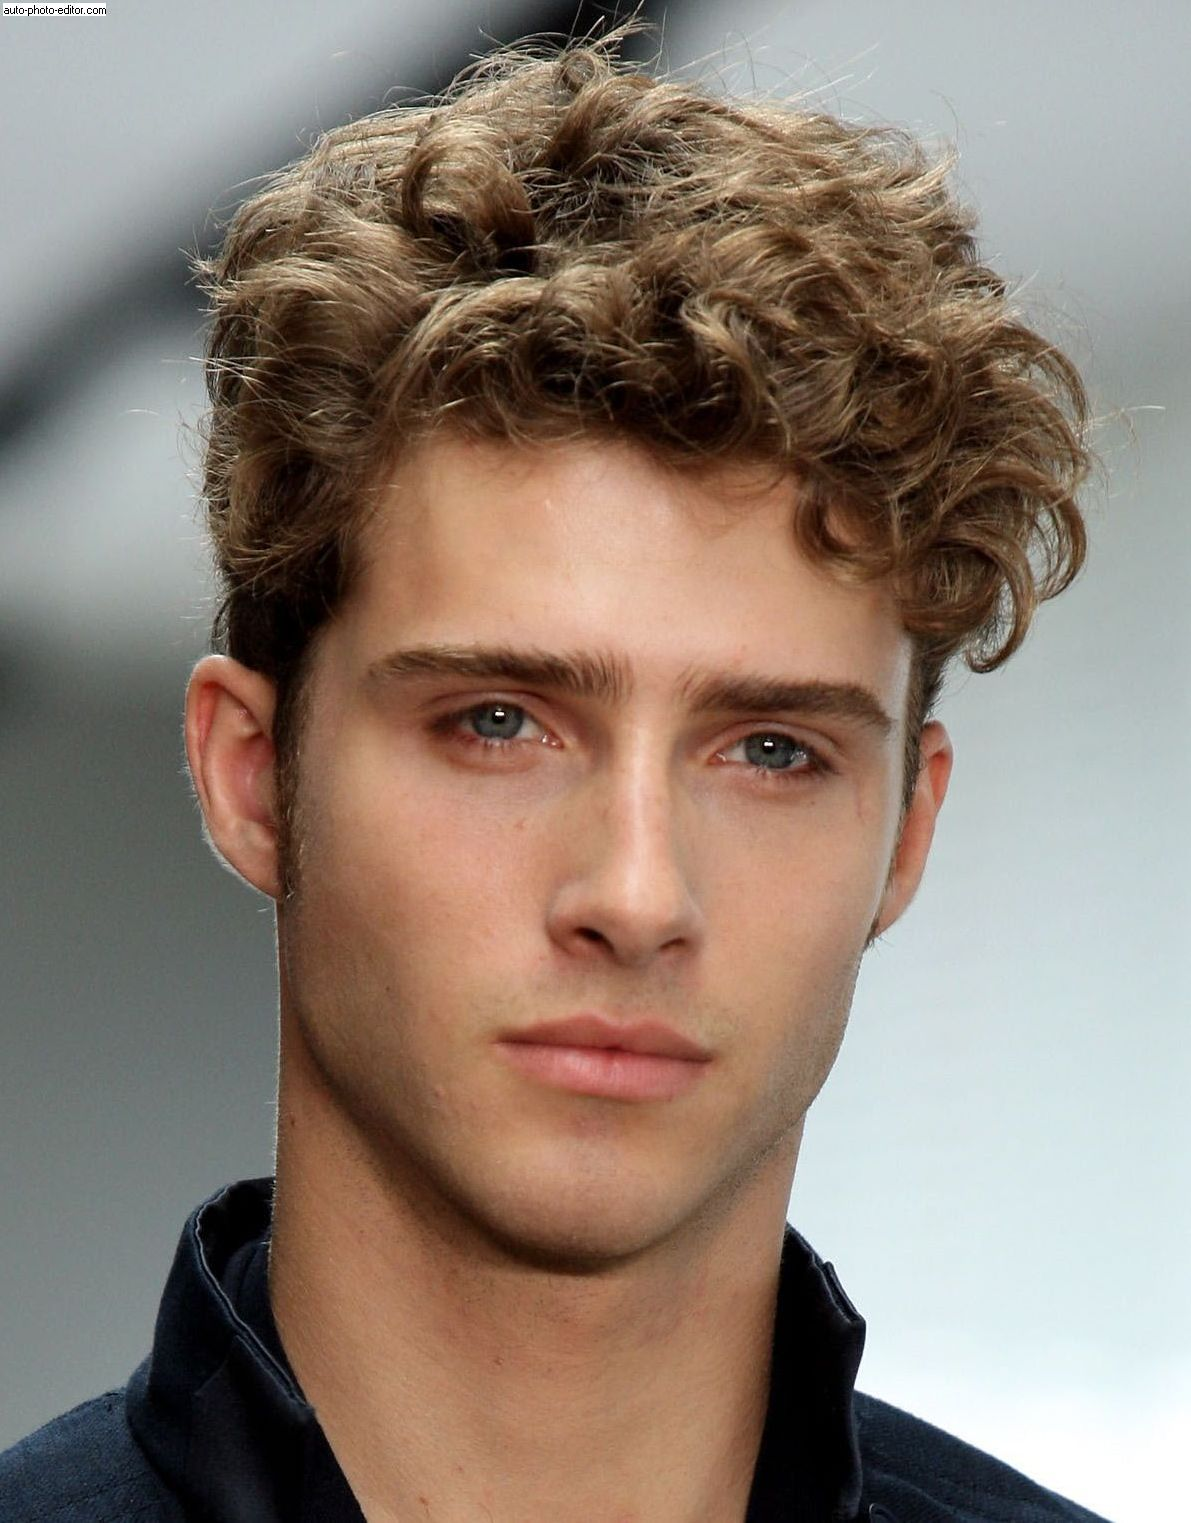 curly hairstyles for men | moda para caballeros- fashion for